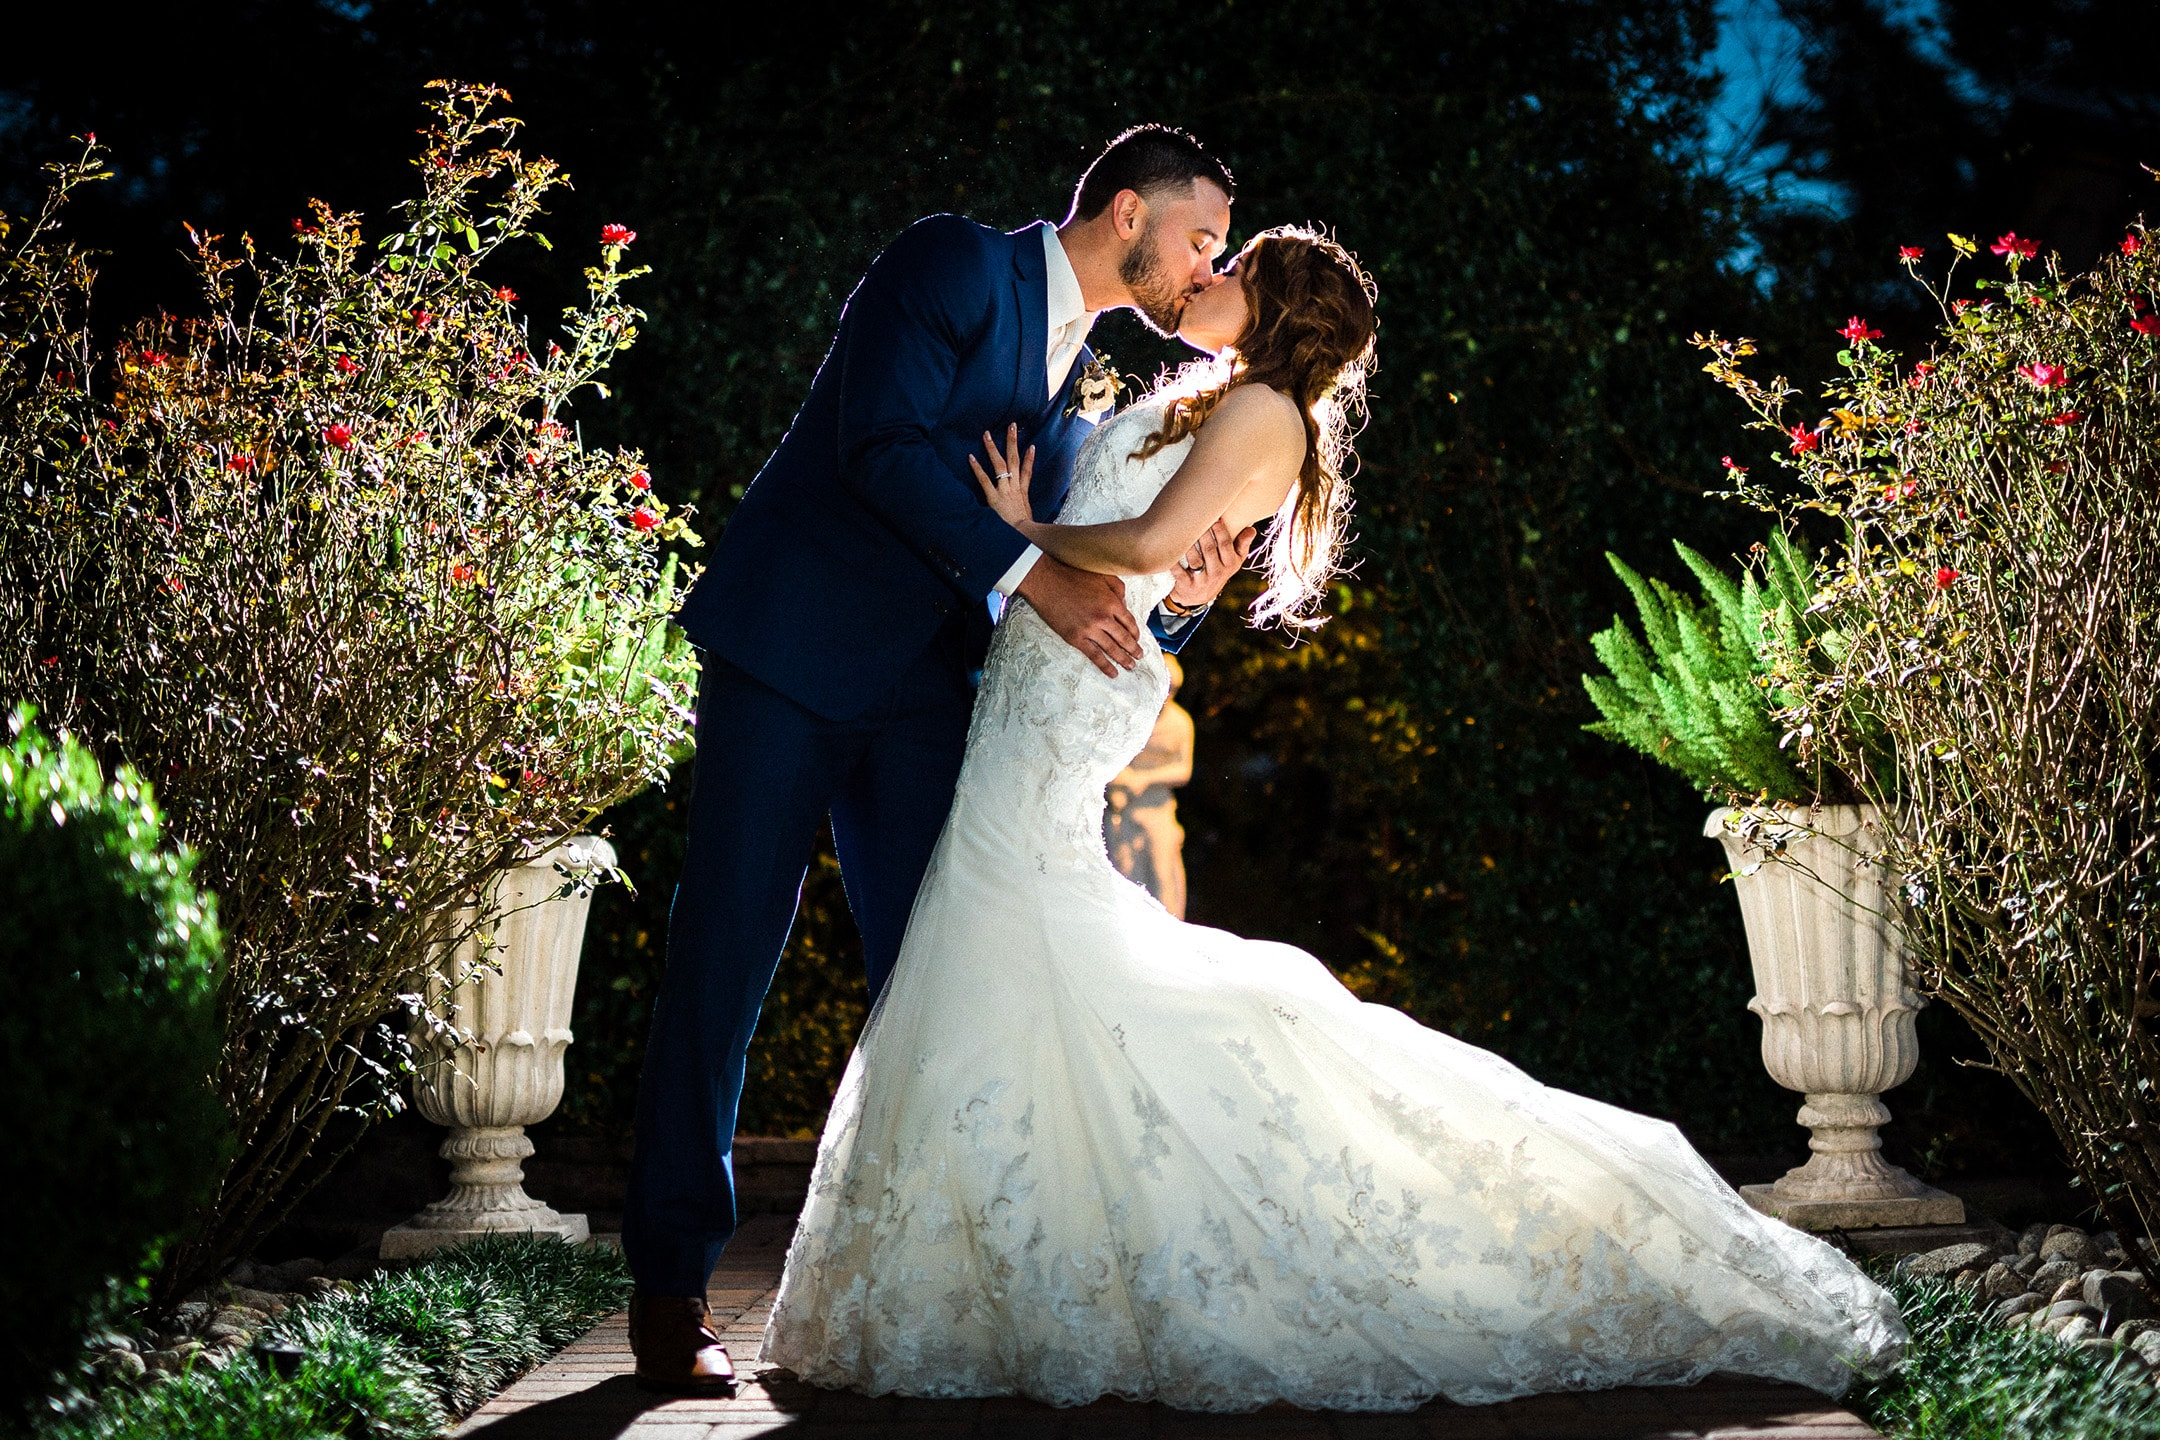 Newlyweds share a kiss at night outdoors.